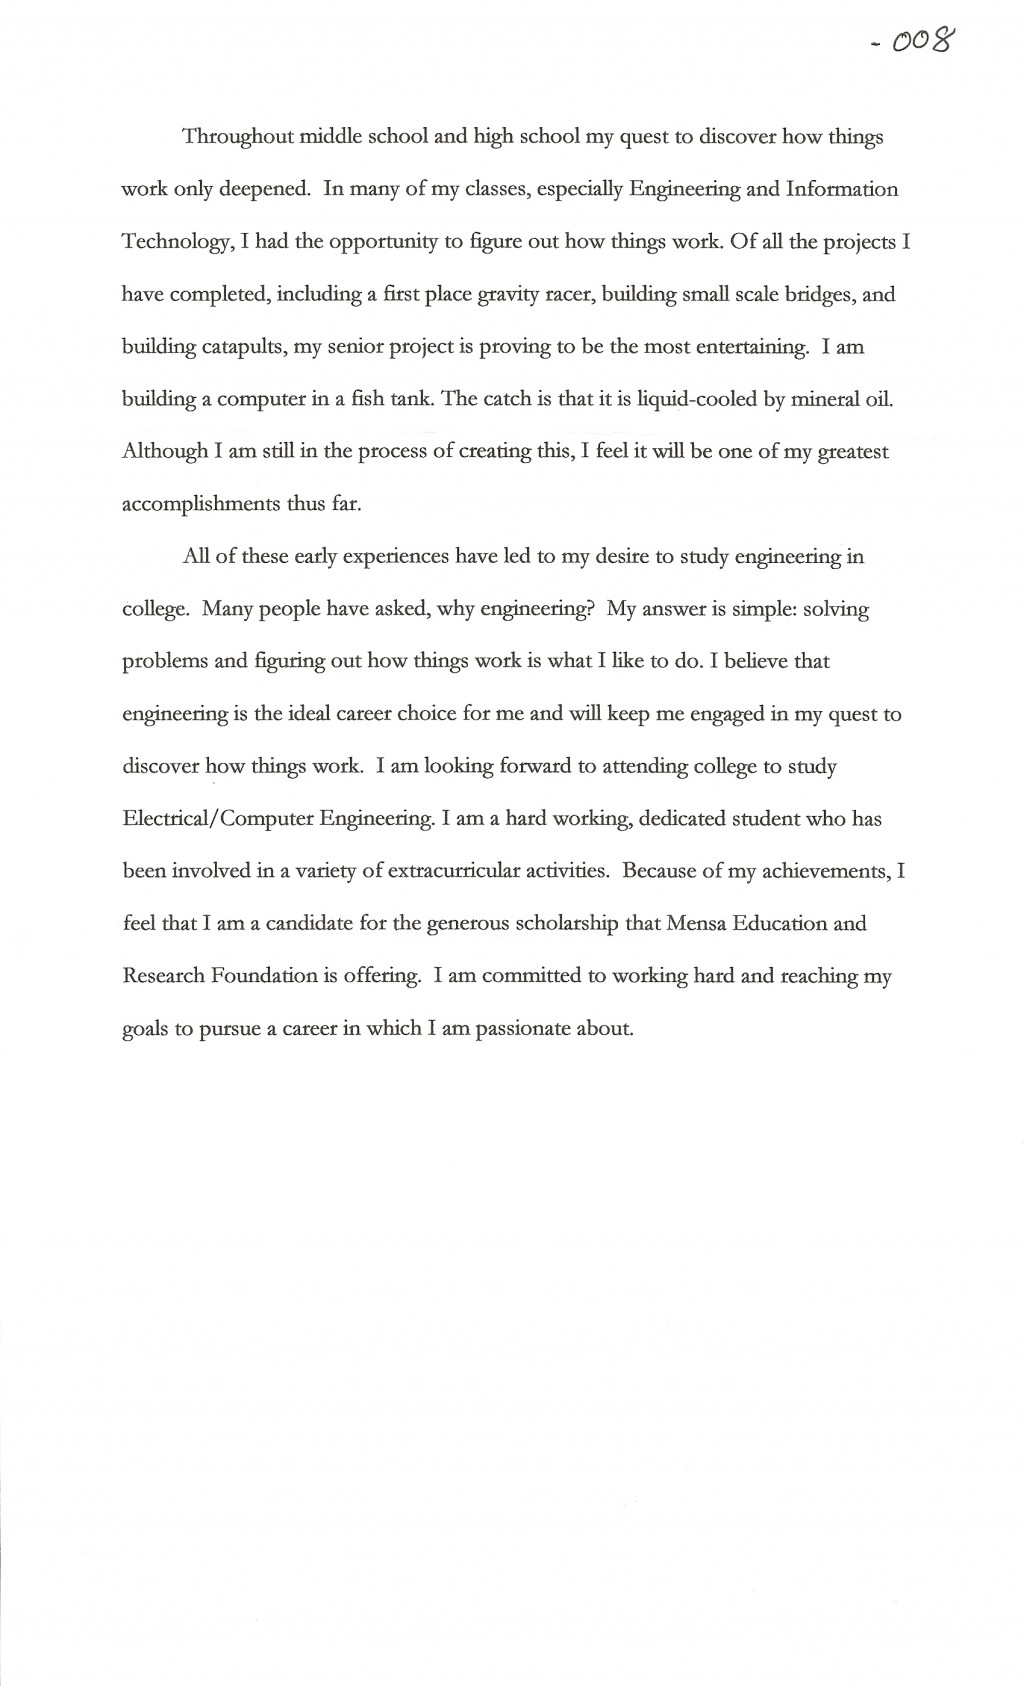 015 Career Essay Joshua Cate Amazing Research Rubric Example Goals Sample Large